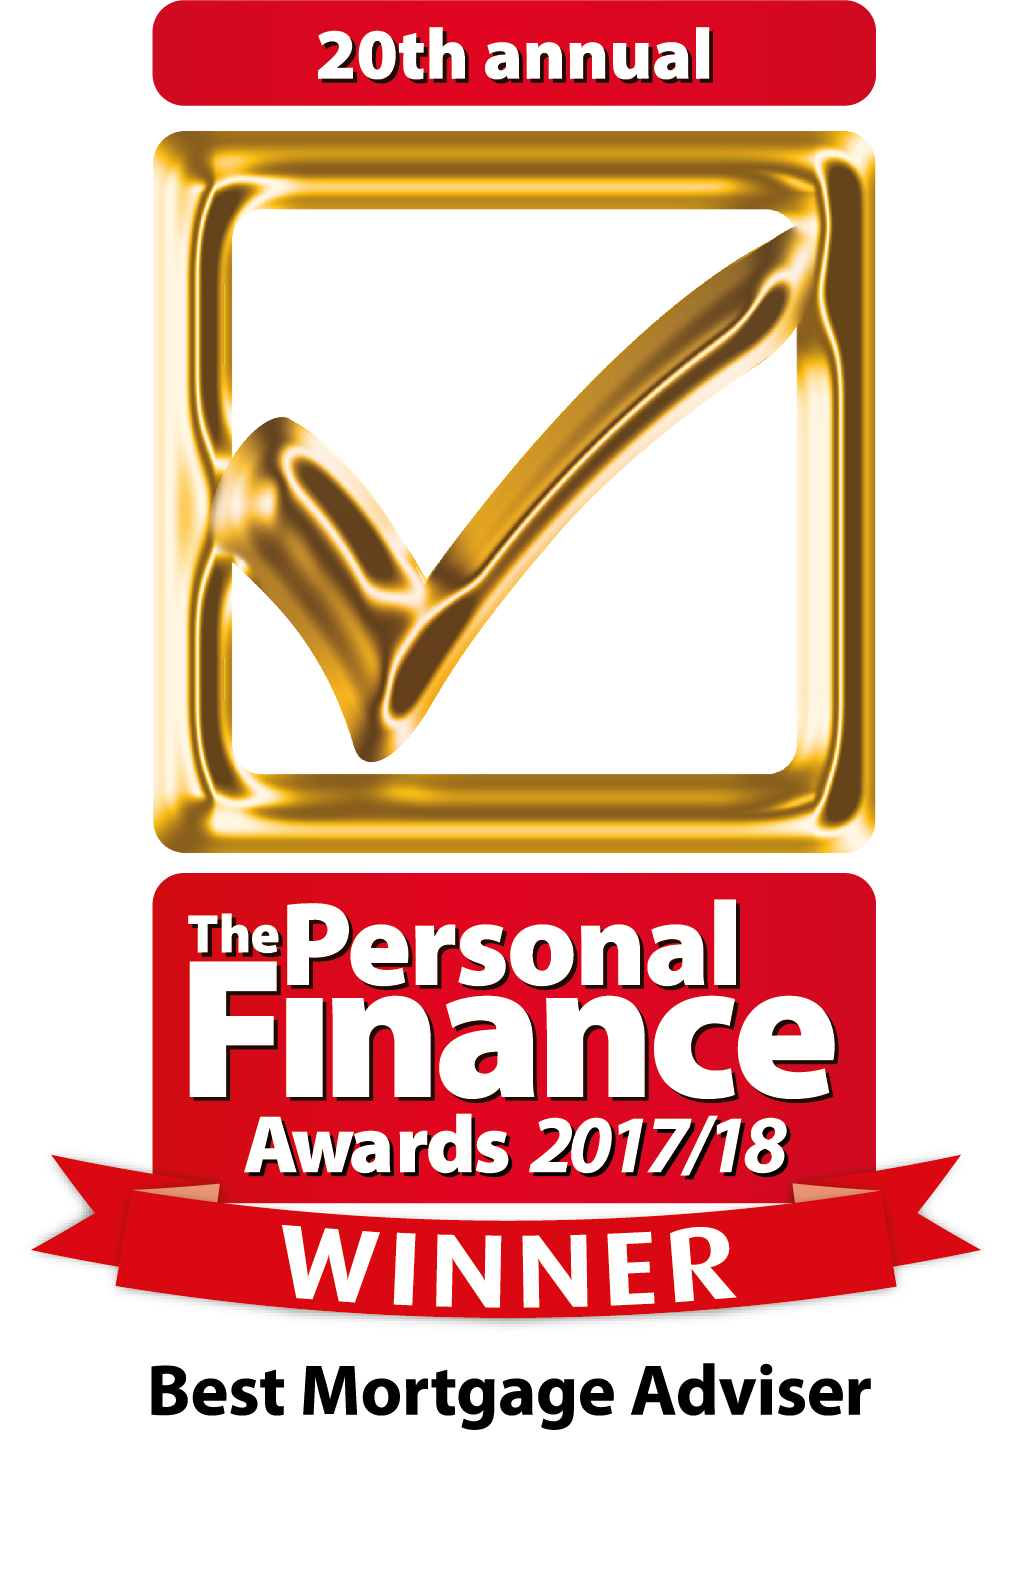 Best Mortgage Adviser - Personal Finance Awards